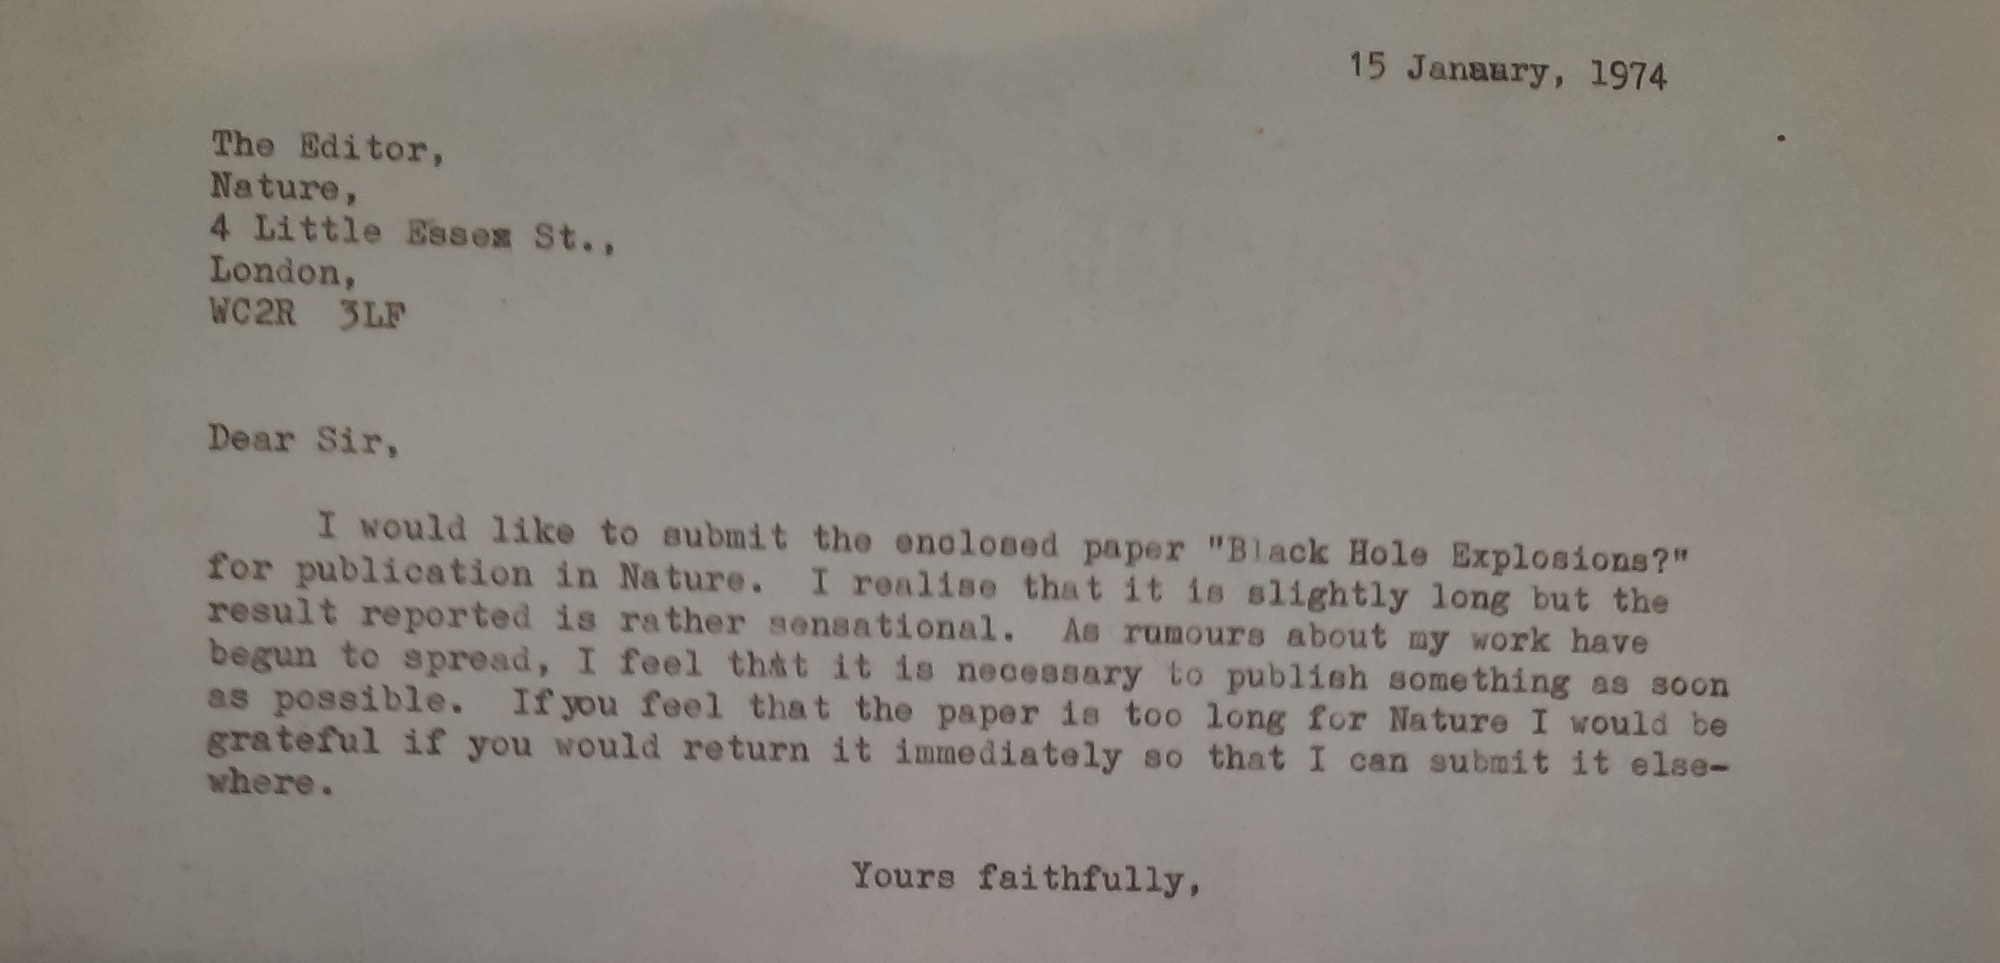 Submission letter for Hawking's paper on black hole radiation, 1974